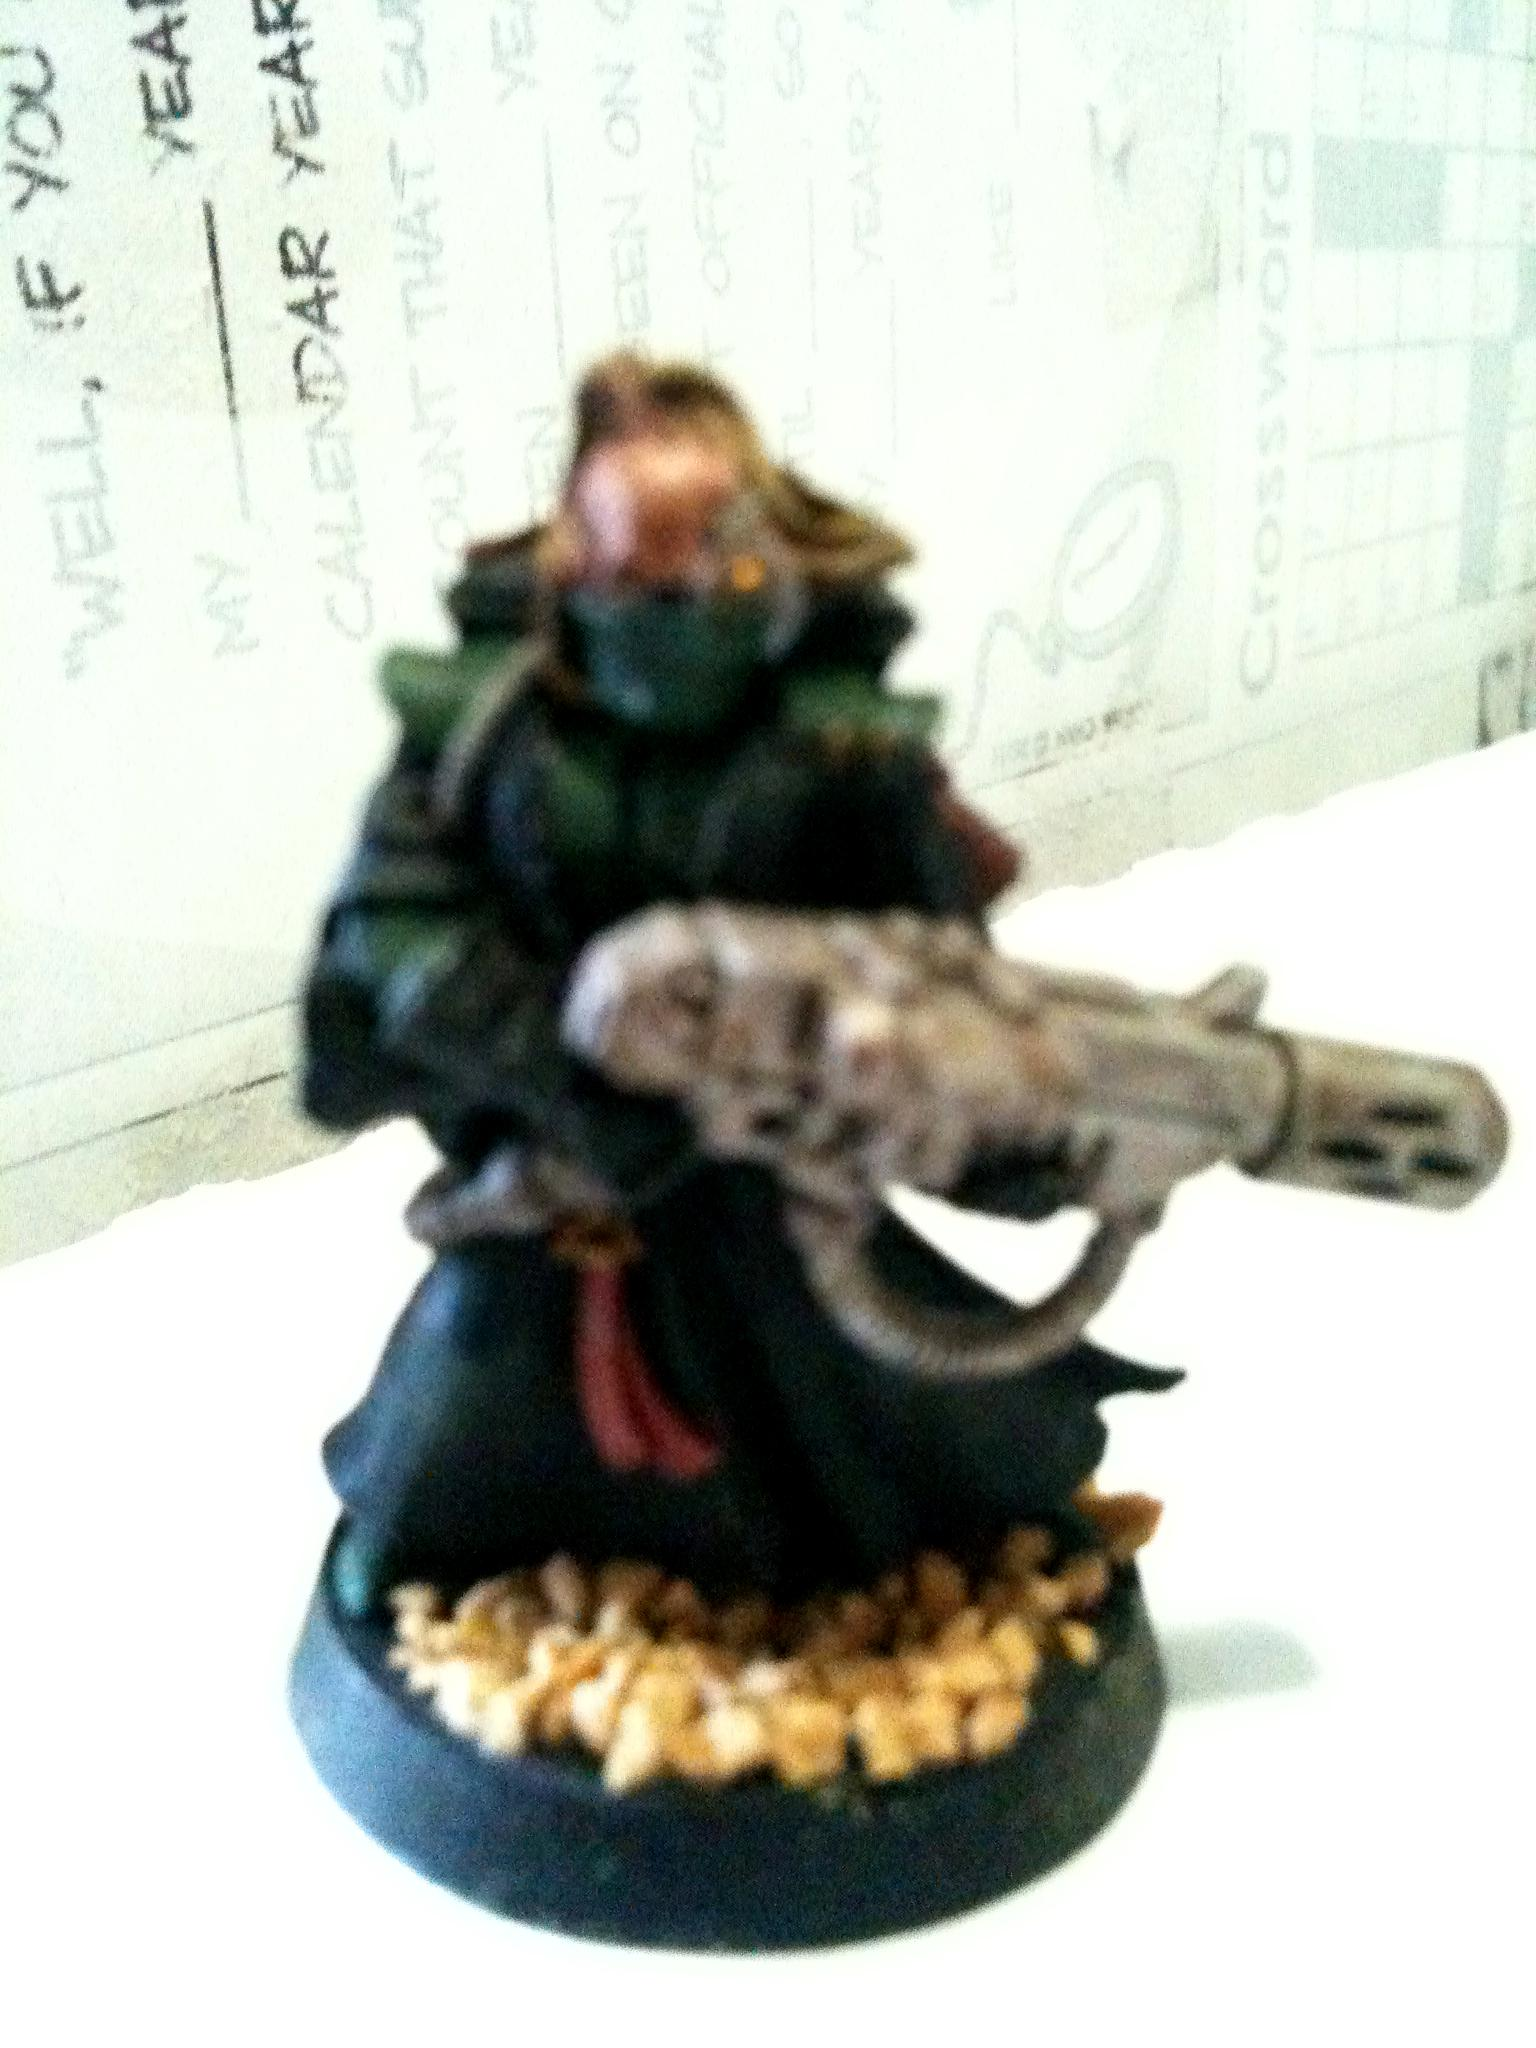 Space Pirate with Melta